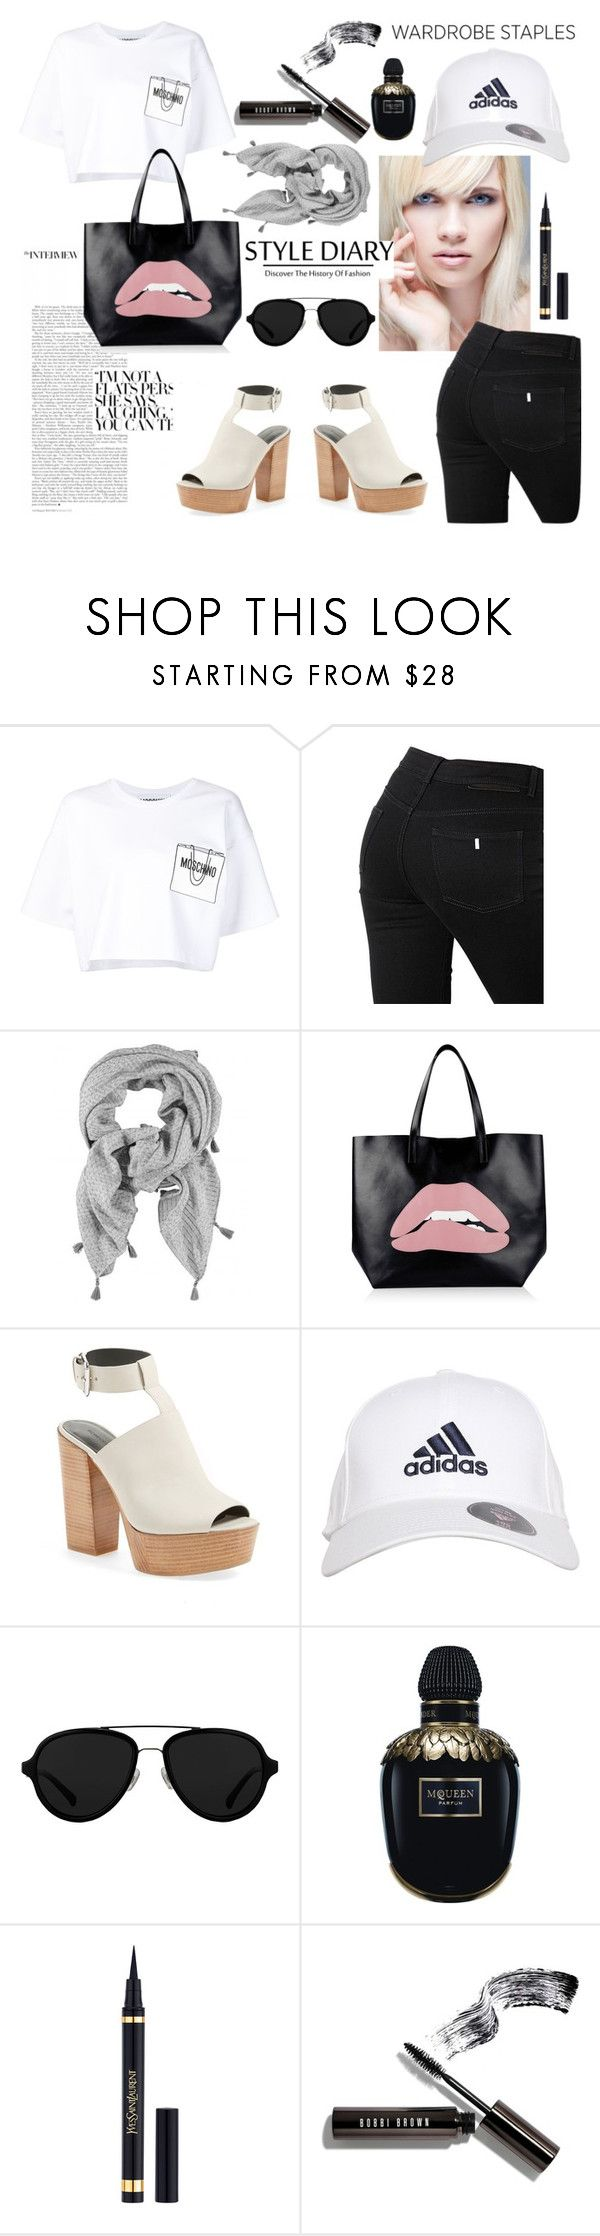 """Fun Basic"" by blackheaven on Polyvore featuring Moschino, STELLA McCARTNEY, RED Valentino, Rebecca Minkoff, adidas, 3.1 Phillip Lim, Alexander McQueen and Bobbi Brown Cosmetics"